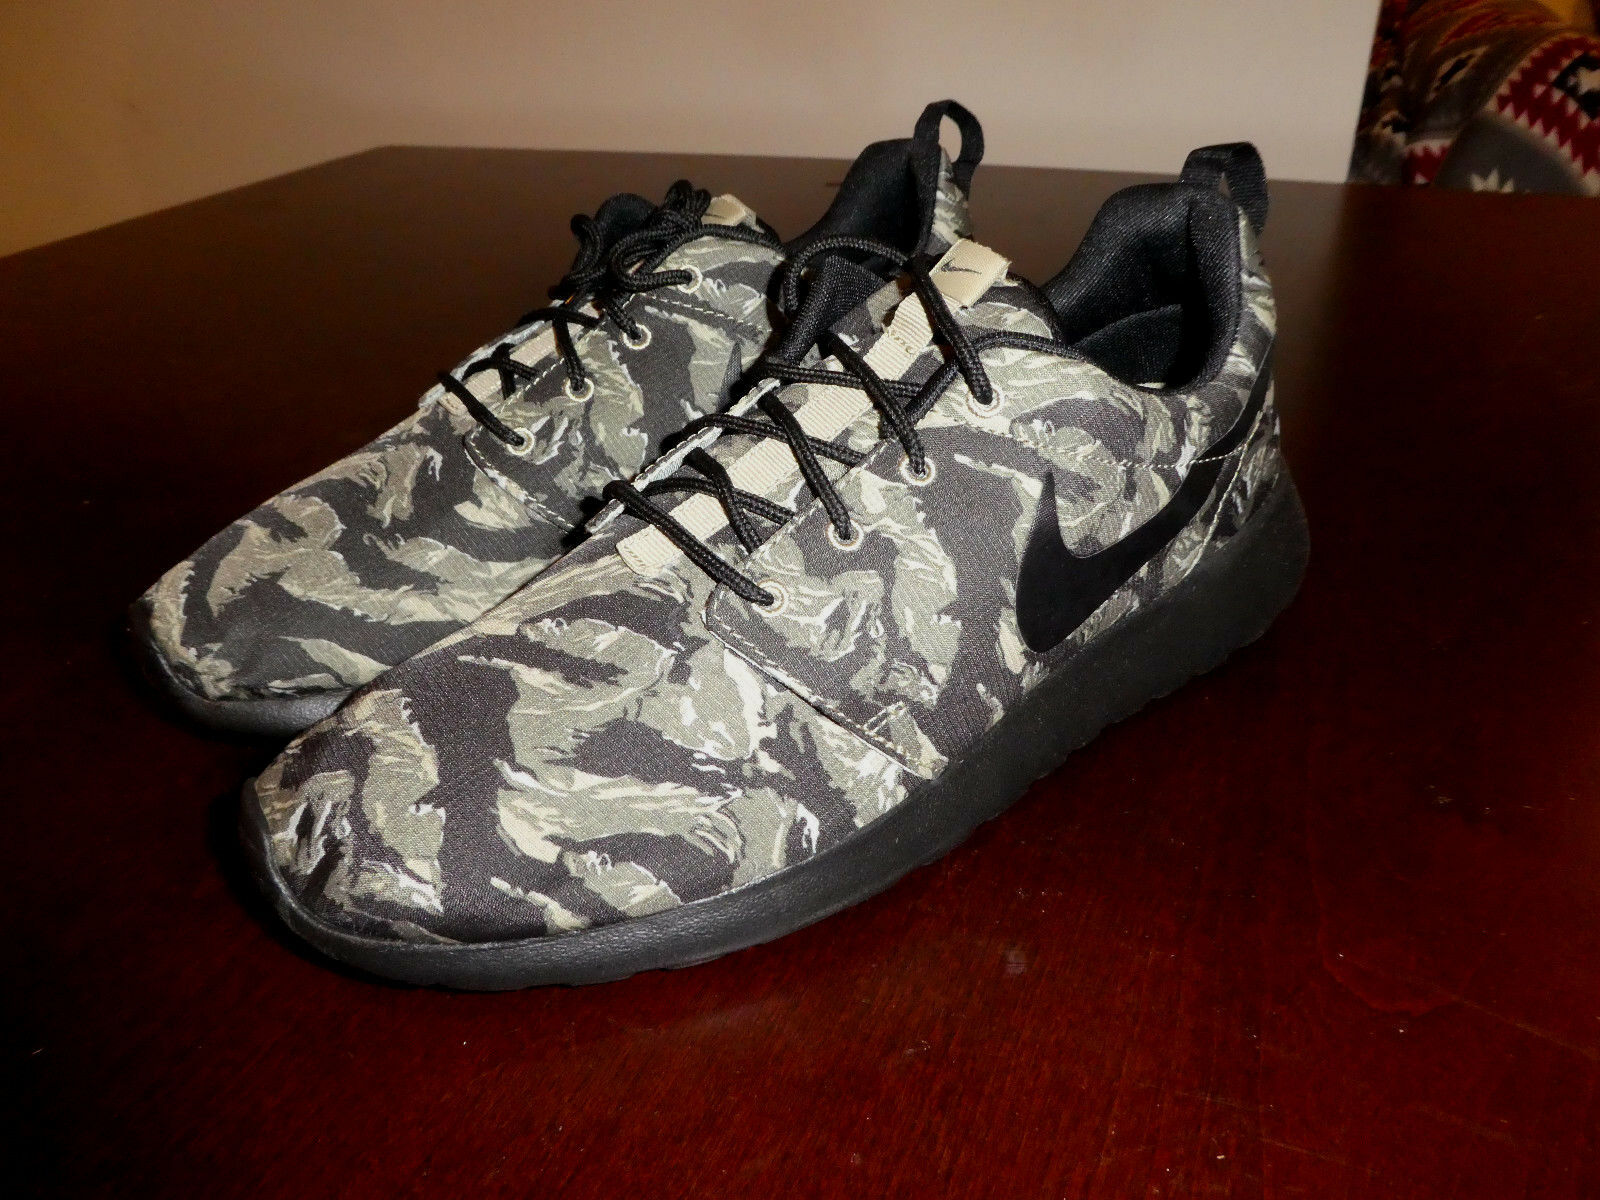 Nike Roshe Run Rosherun Print shoes mens new 655206 022 sneakers tiger